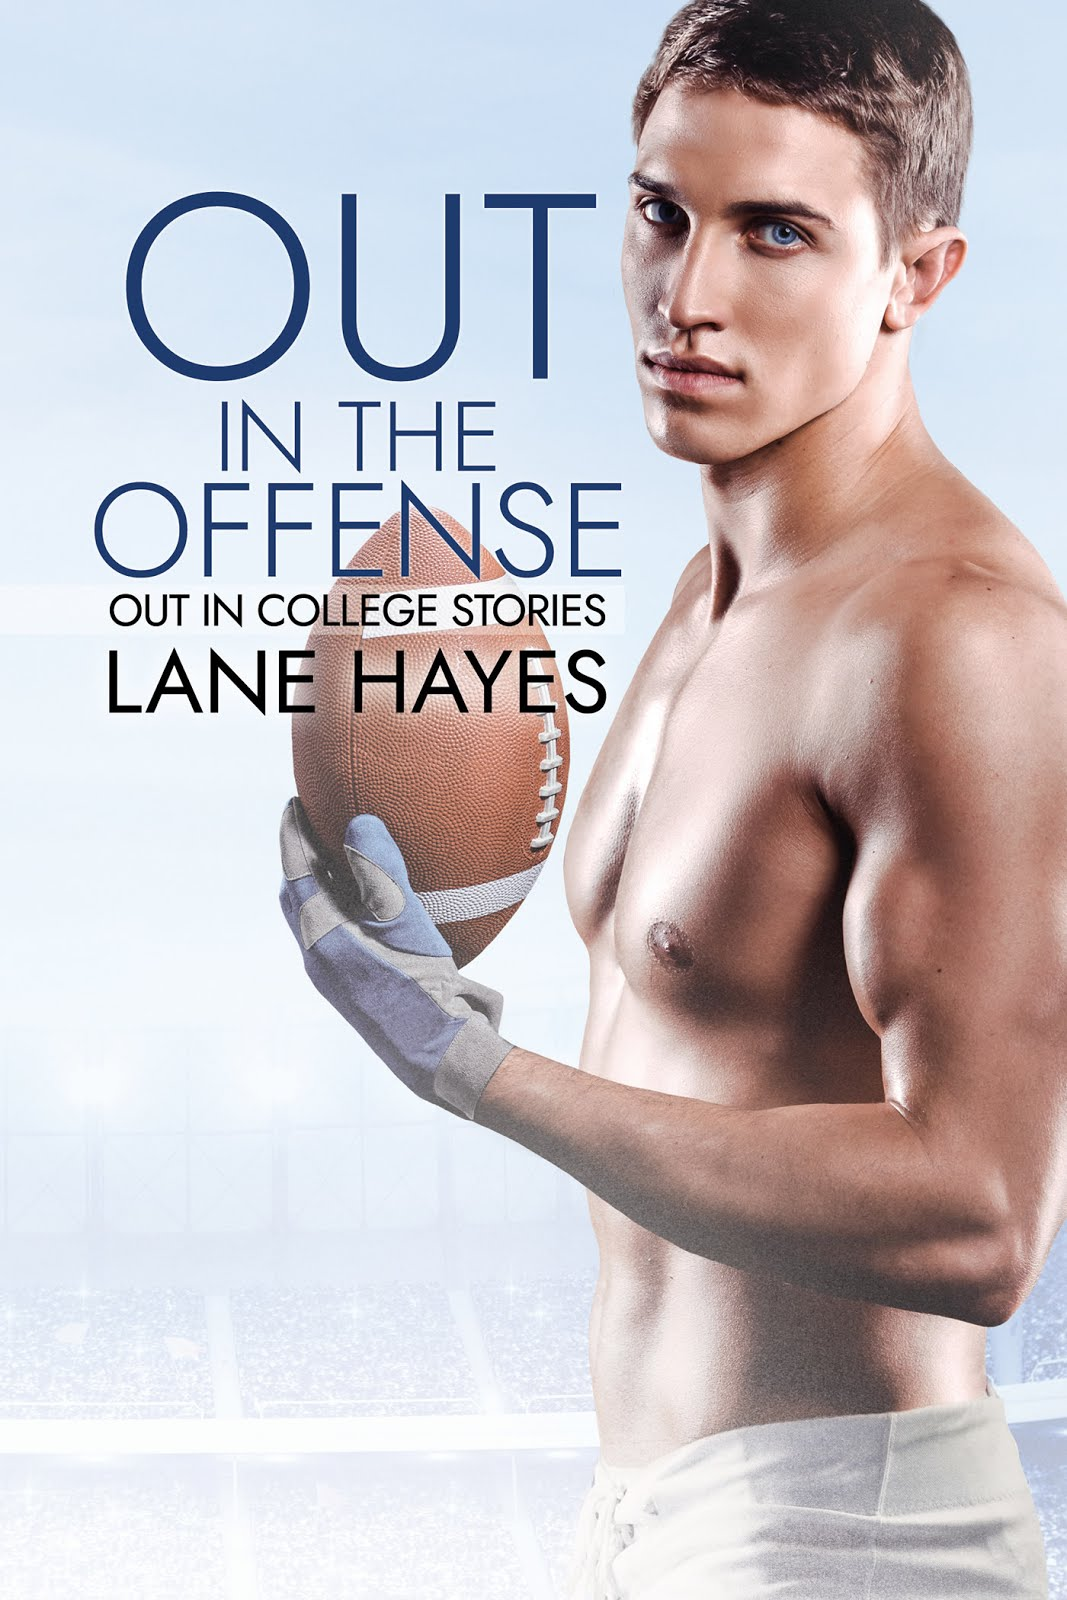 Out In The Offense by Lane Hayes